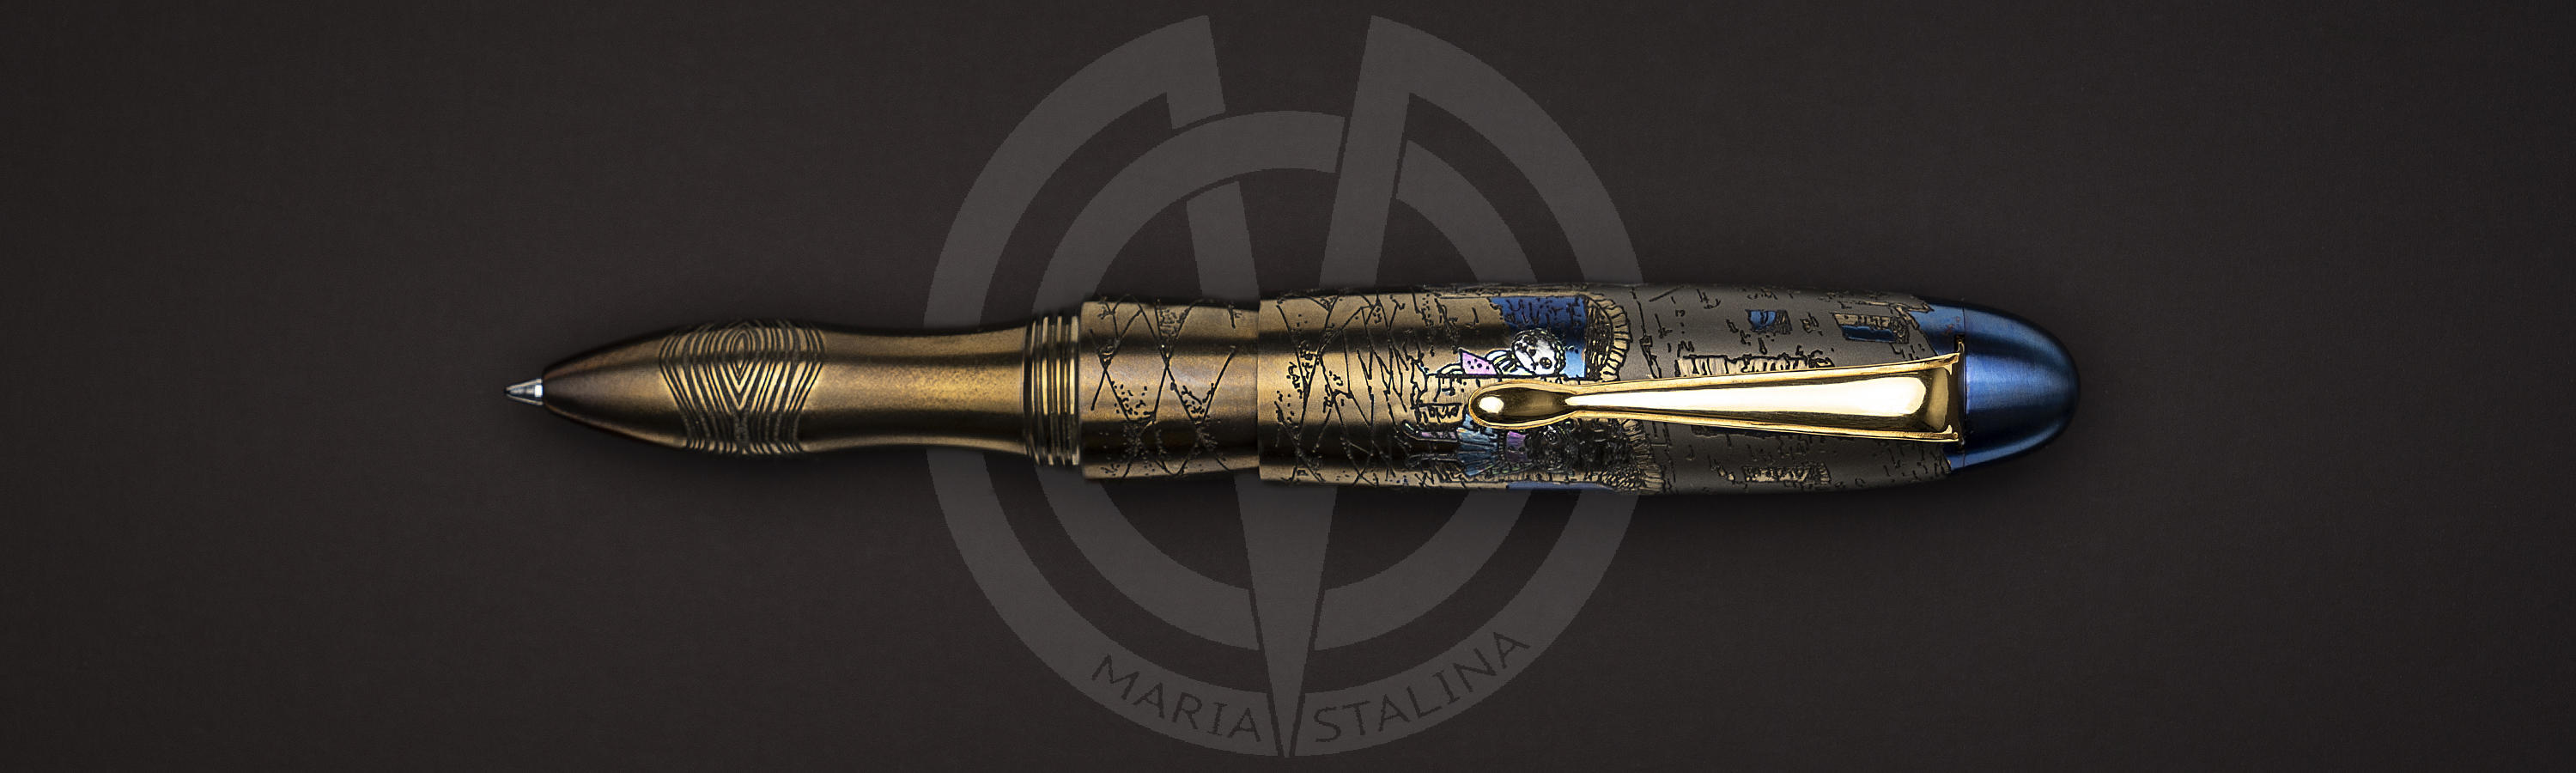 Zeppelin Teddy Death tactical titanium pen